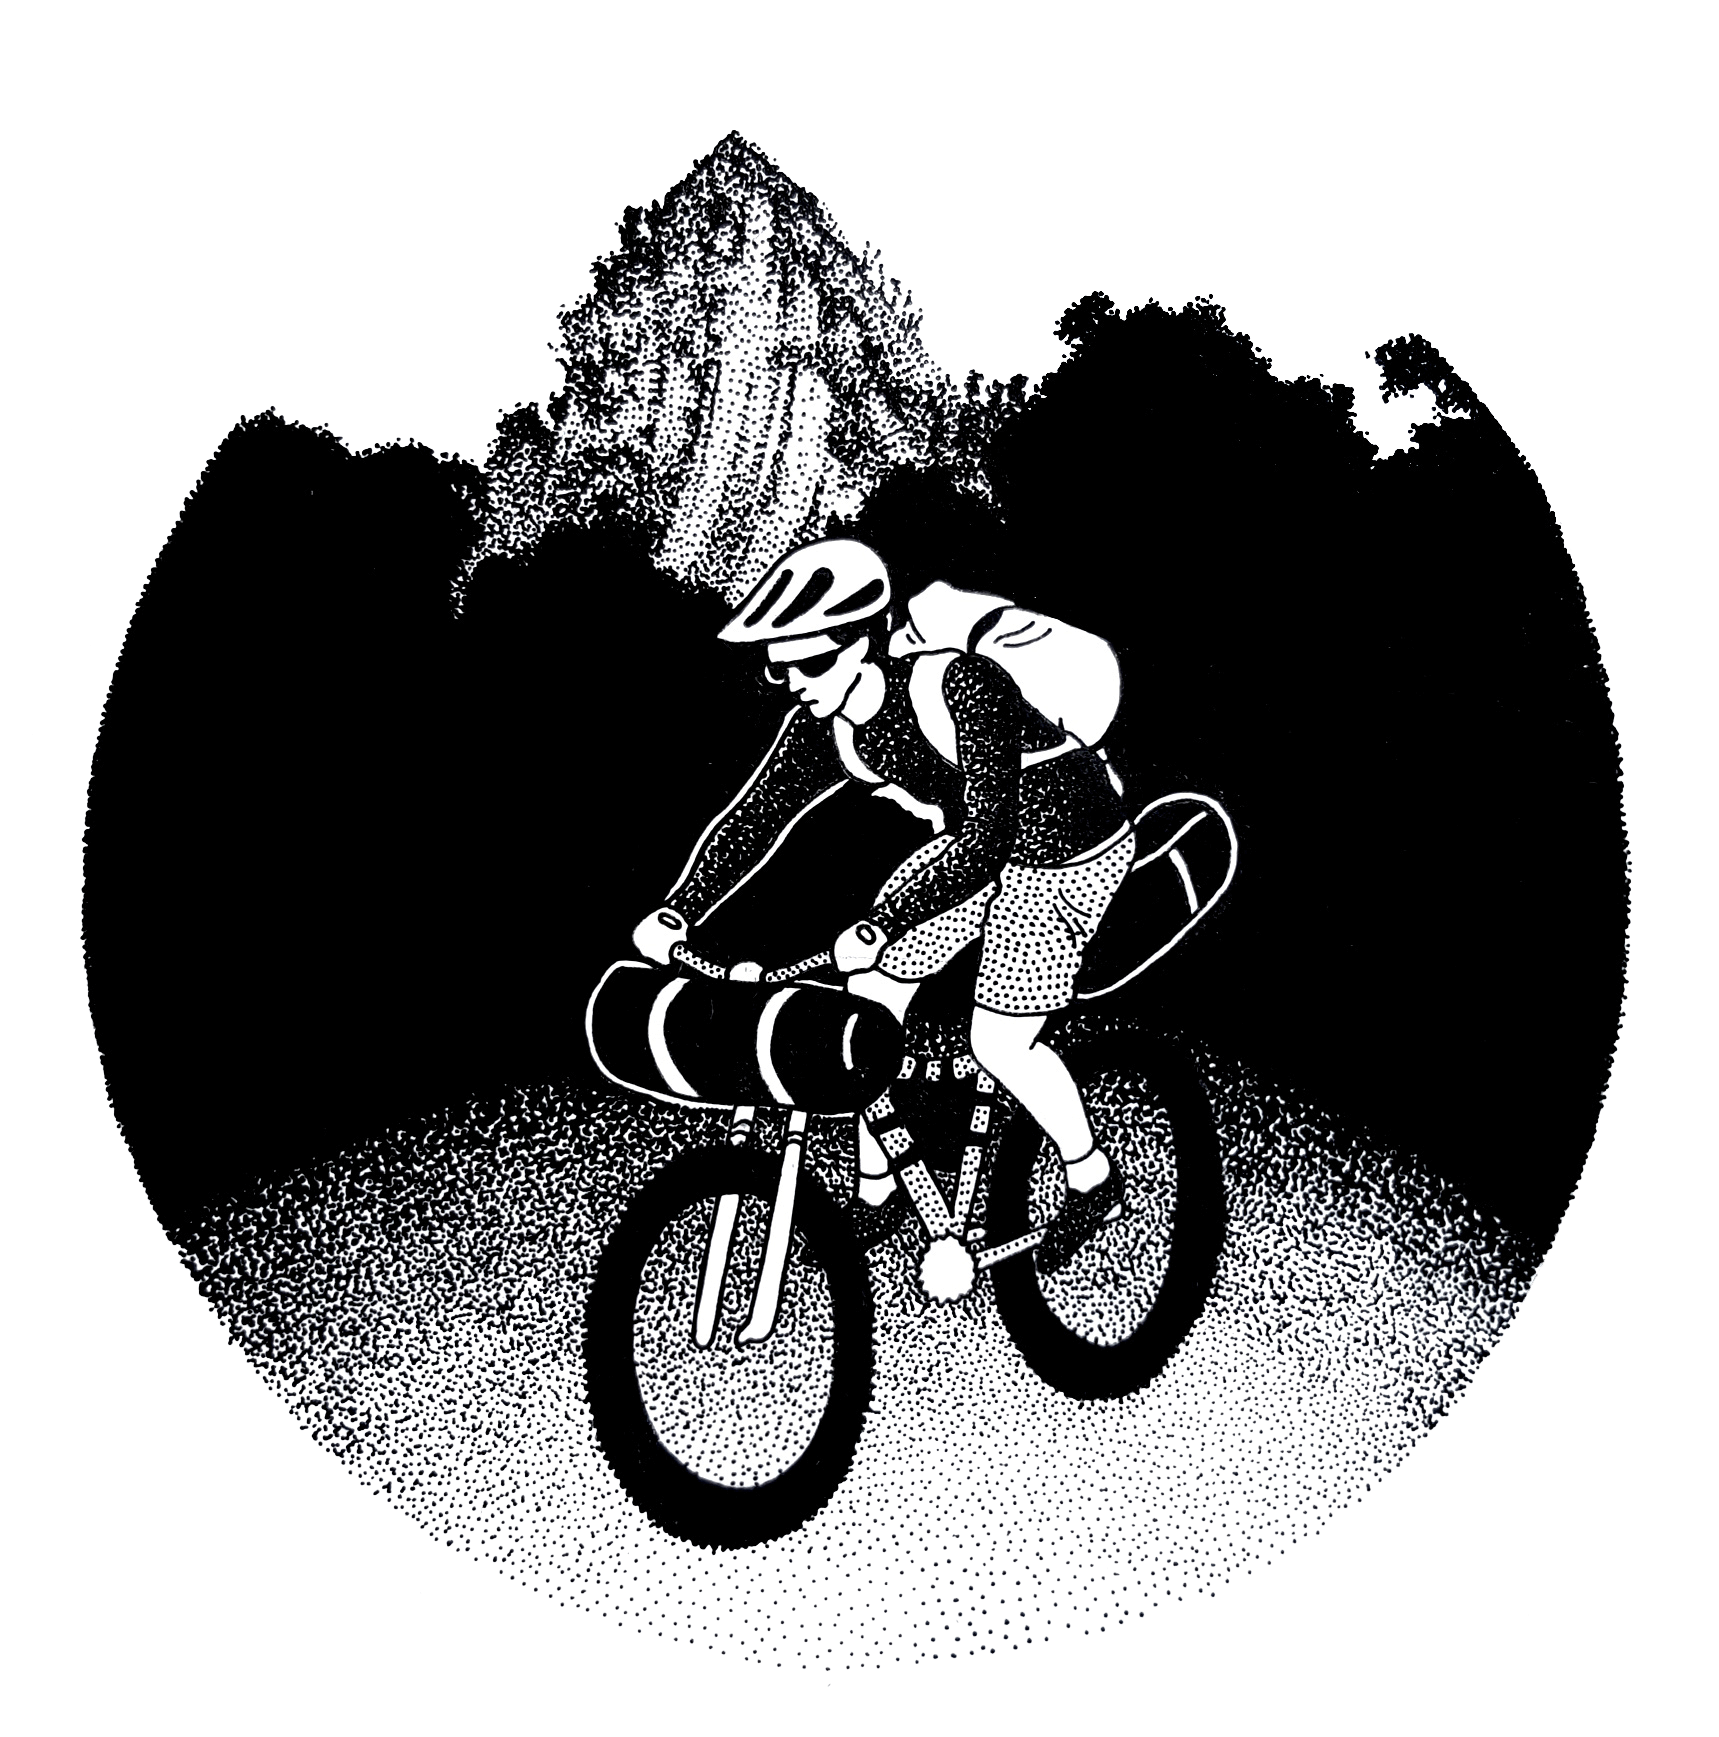 illustrated-graphics-bicycle-icon-black-white.png